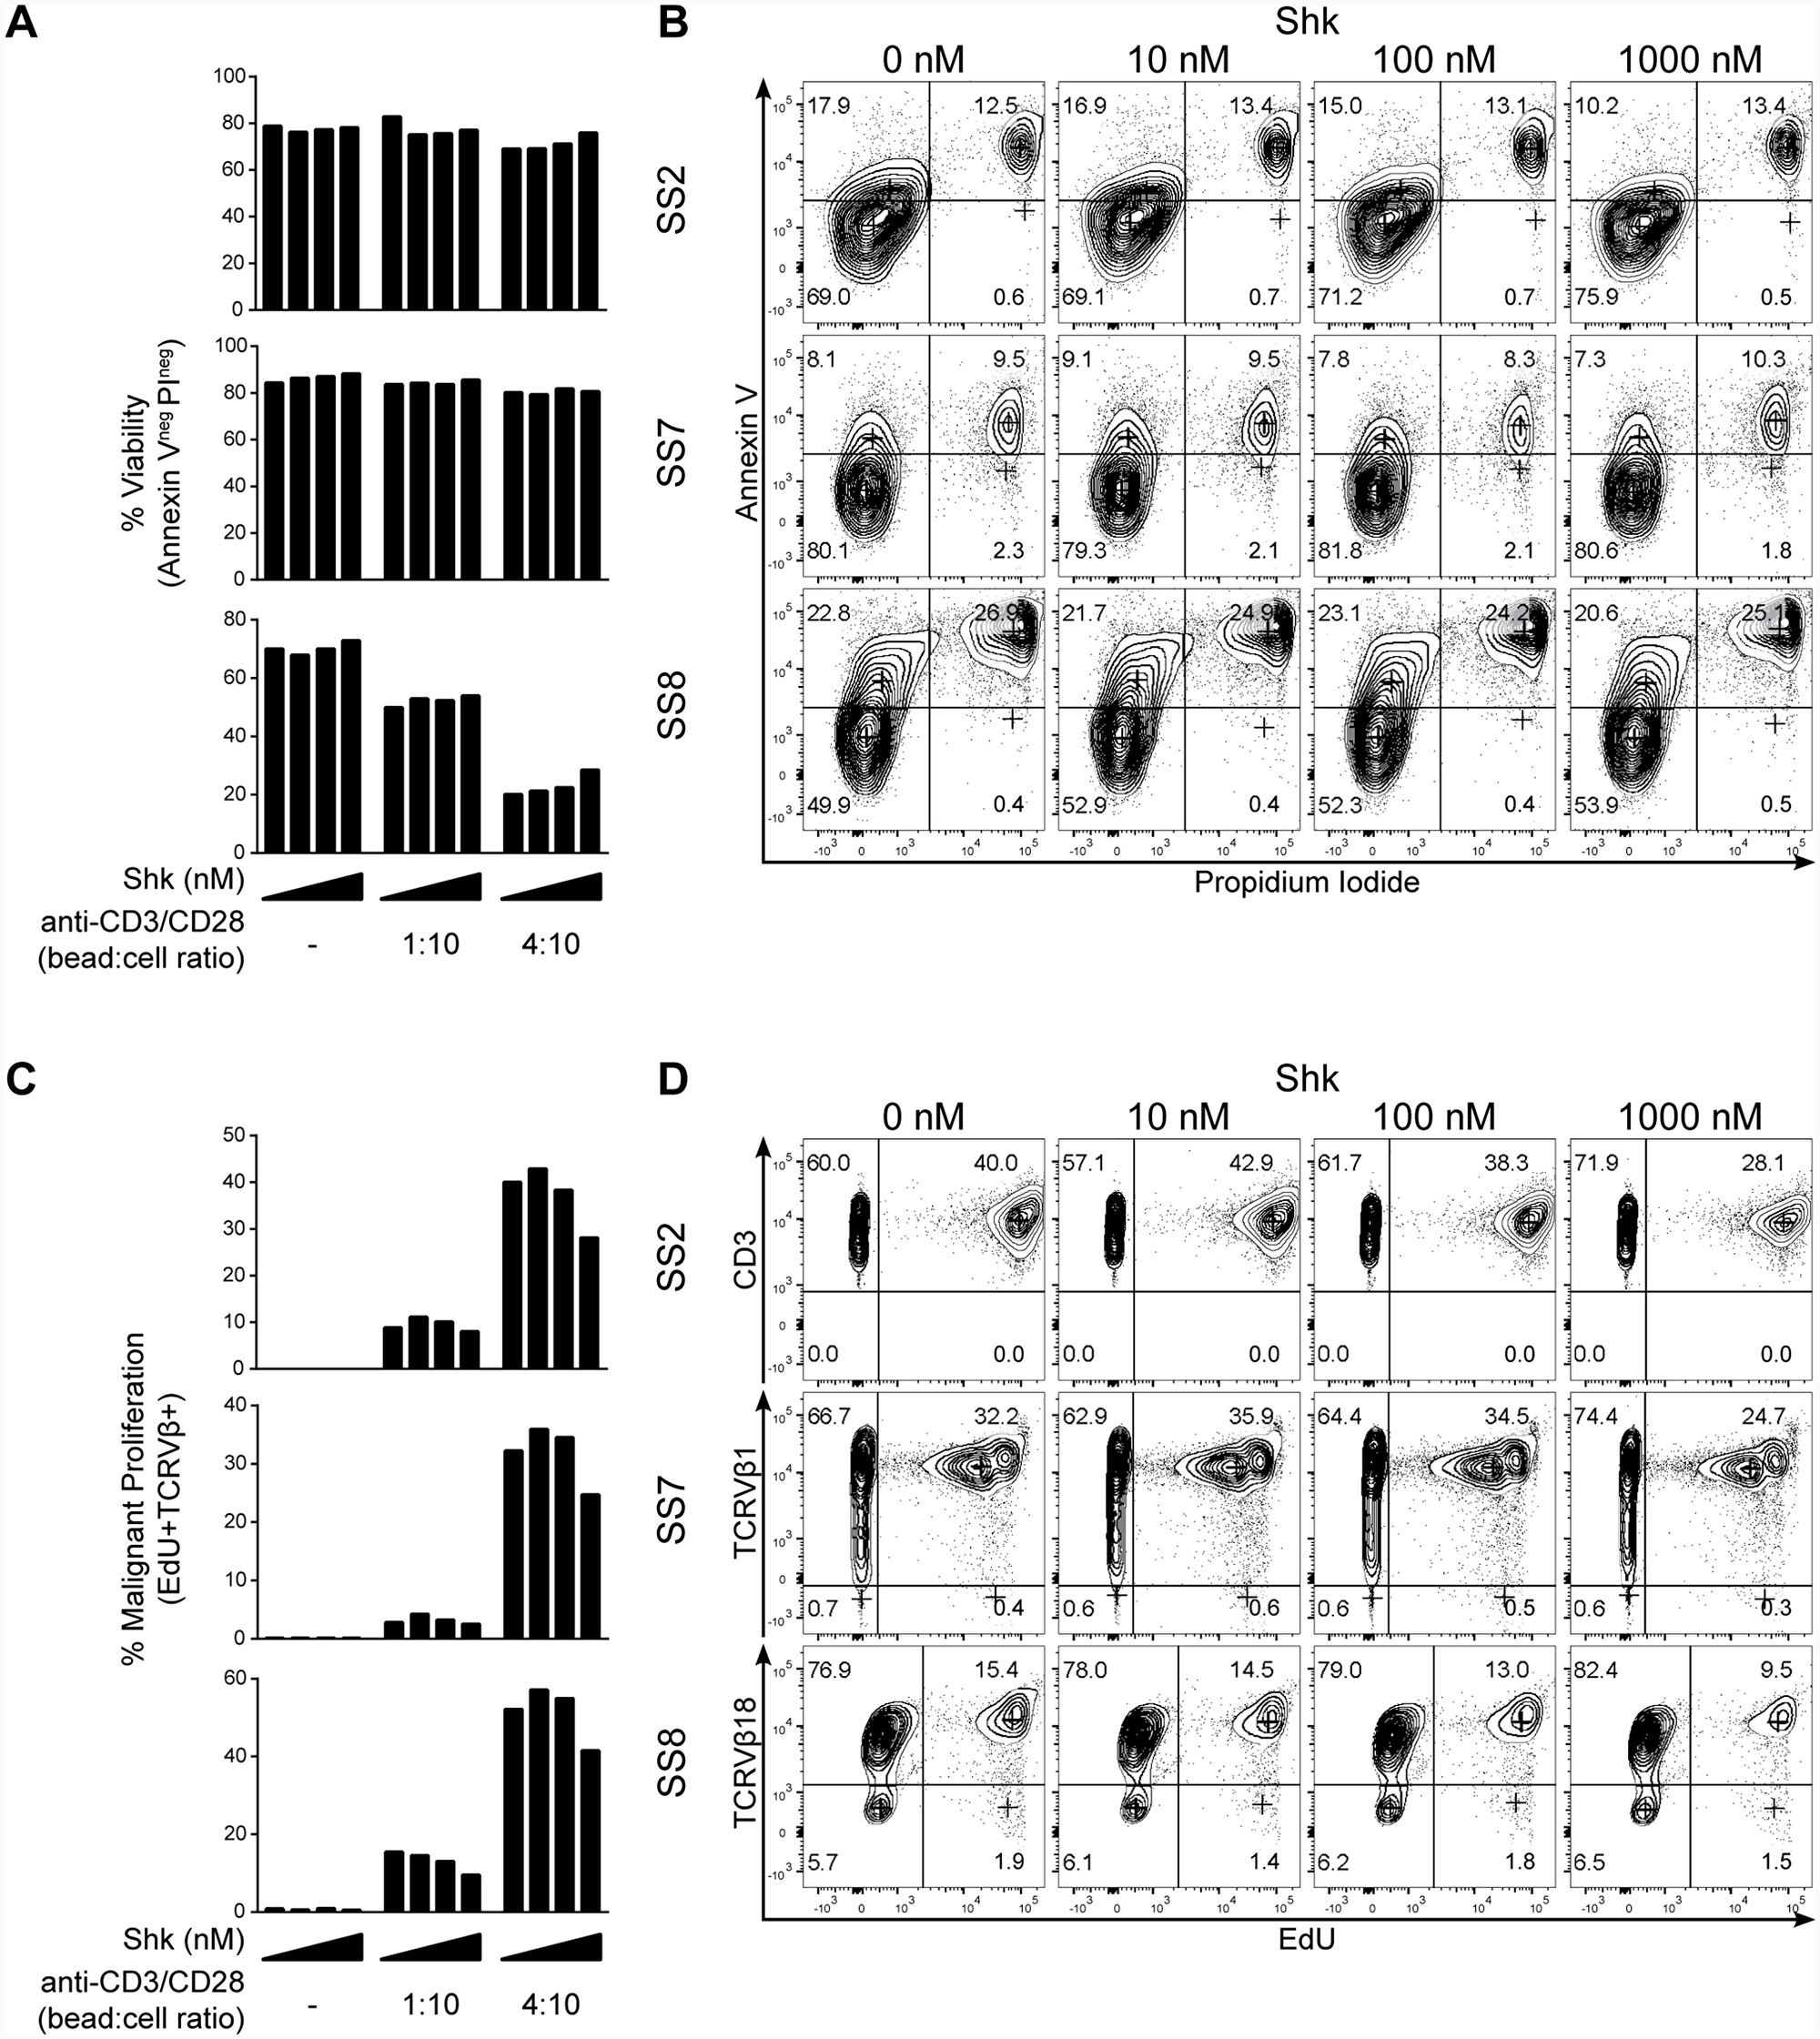 Kv1.3 blockade inhibits activation-induced proliferation of malignant T cells from SS patients.